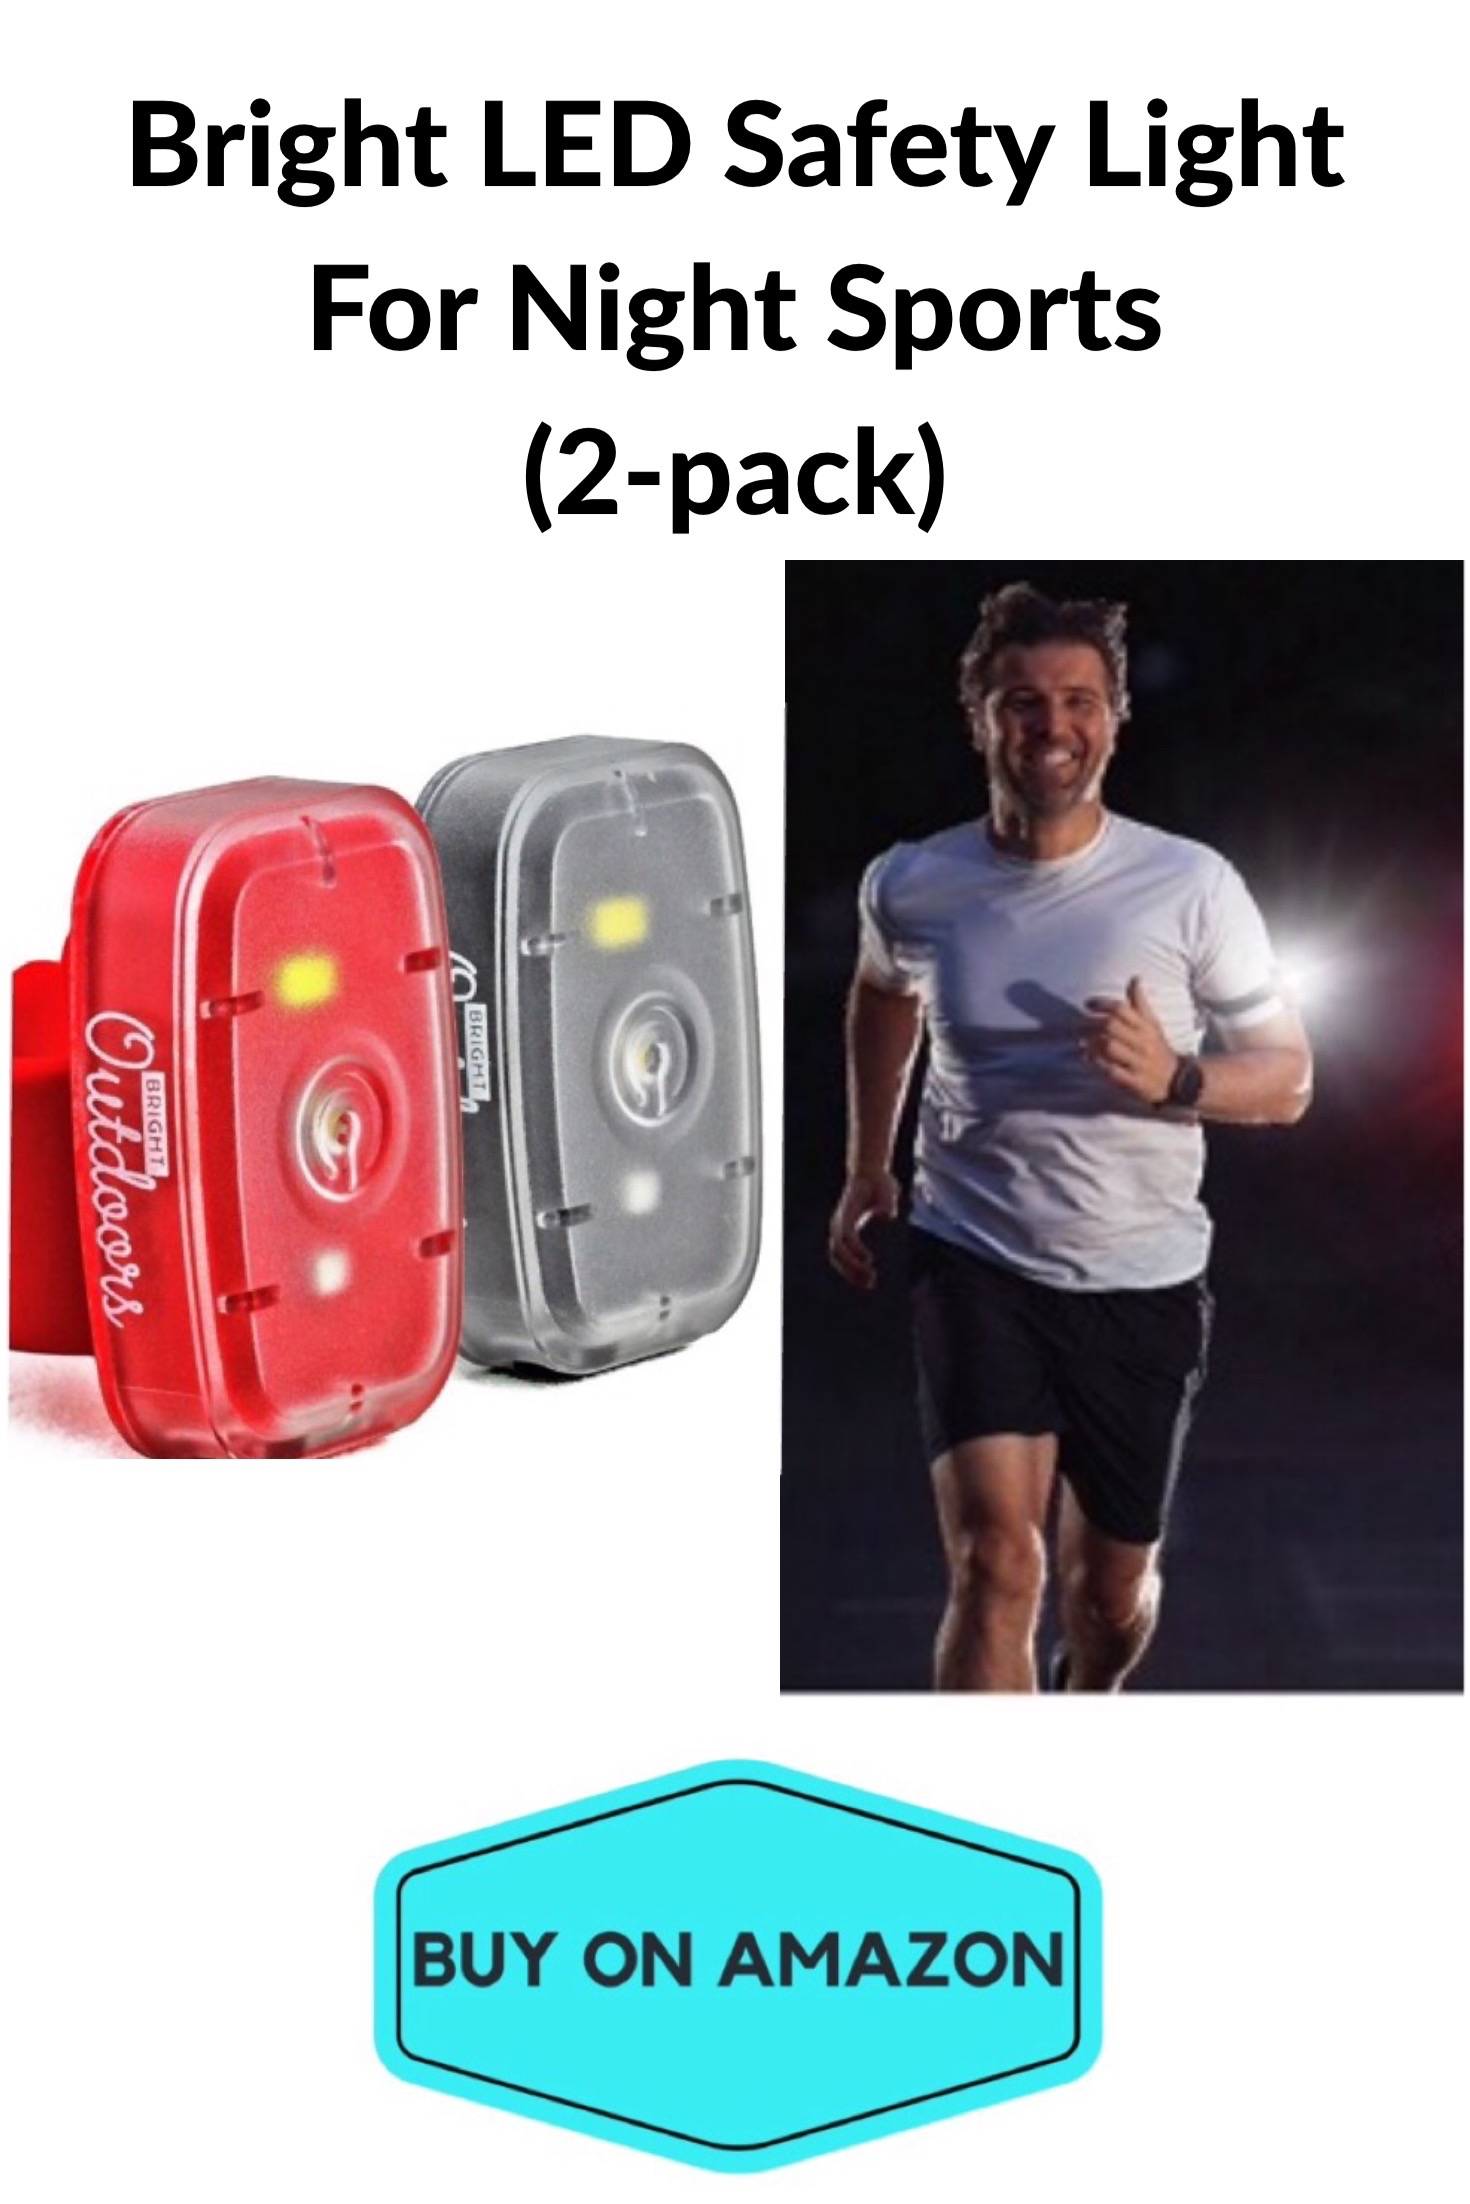 LED Safety Light For Night Sports, 2 pack